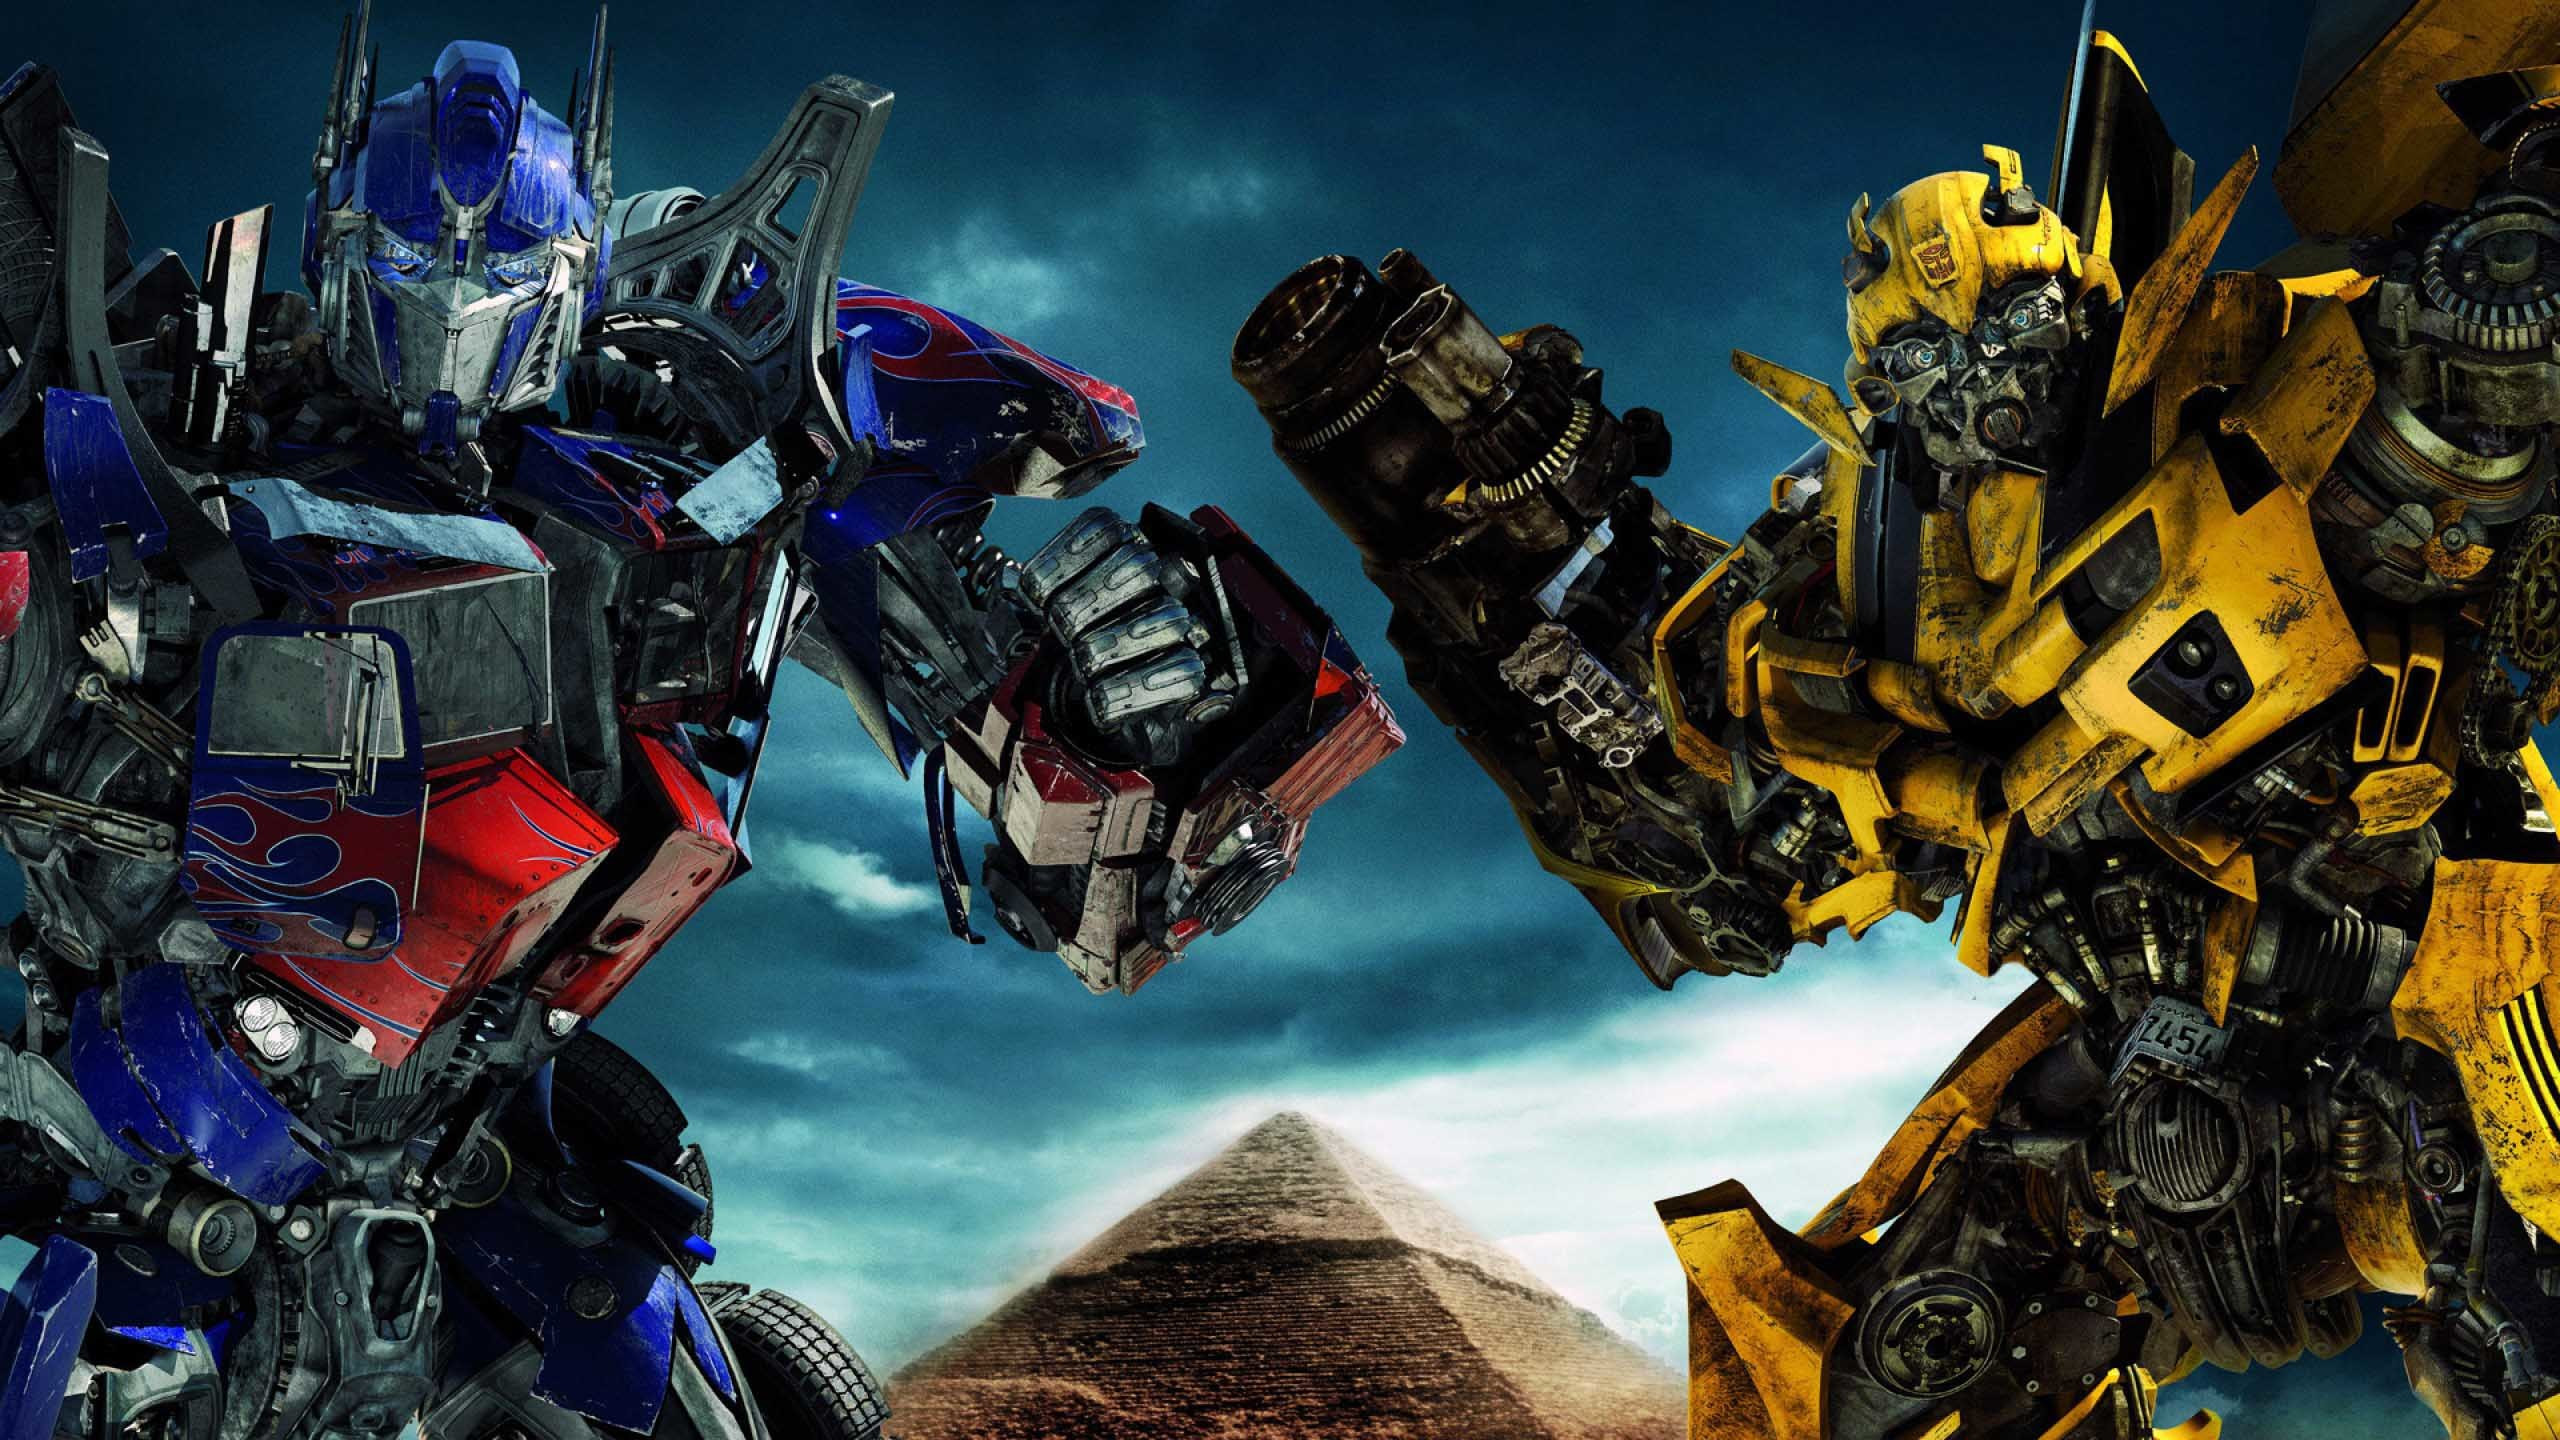 Collection of Optimus Prime Wallpaper on HDWallpapers Transformer Optimus  Prime Wallpapers Wallpapers)